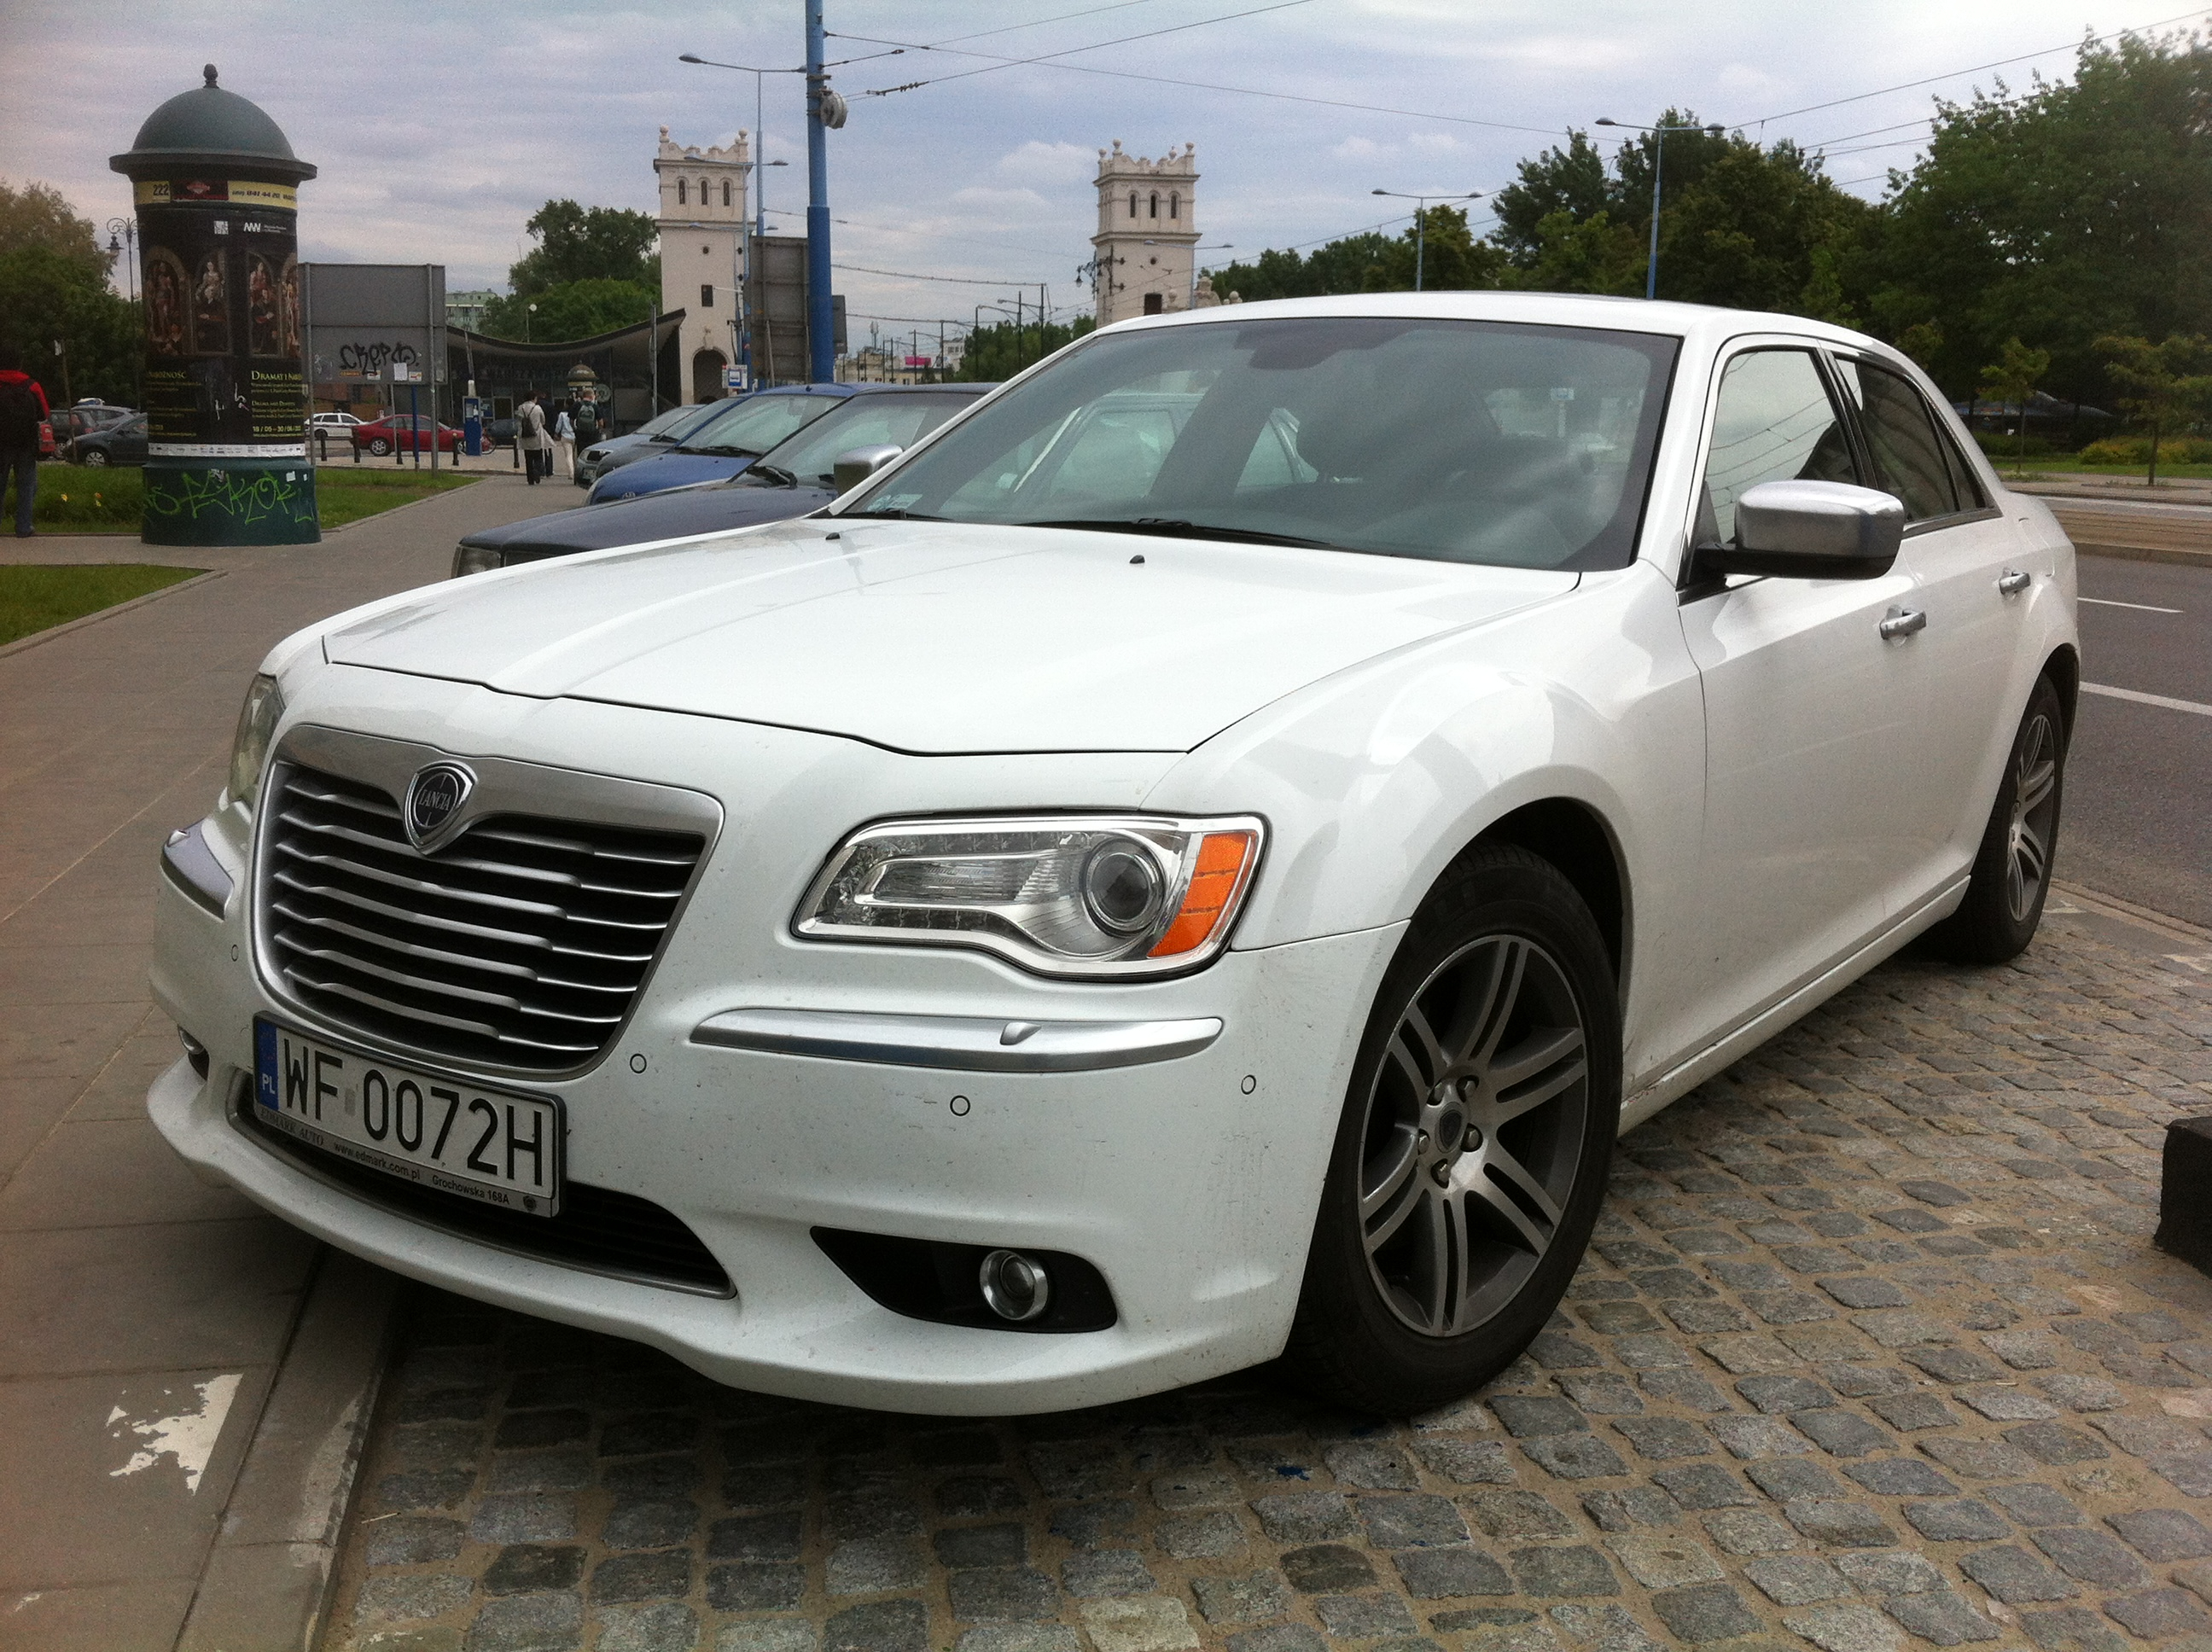 100 Chrysler 200 Pictures on wwwhguhfco